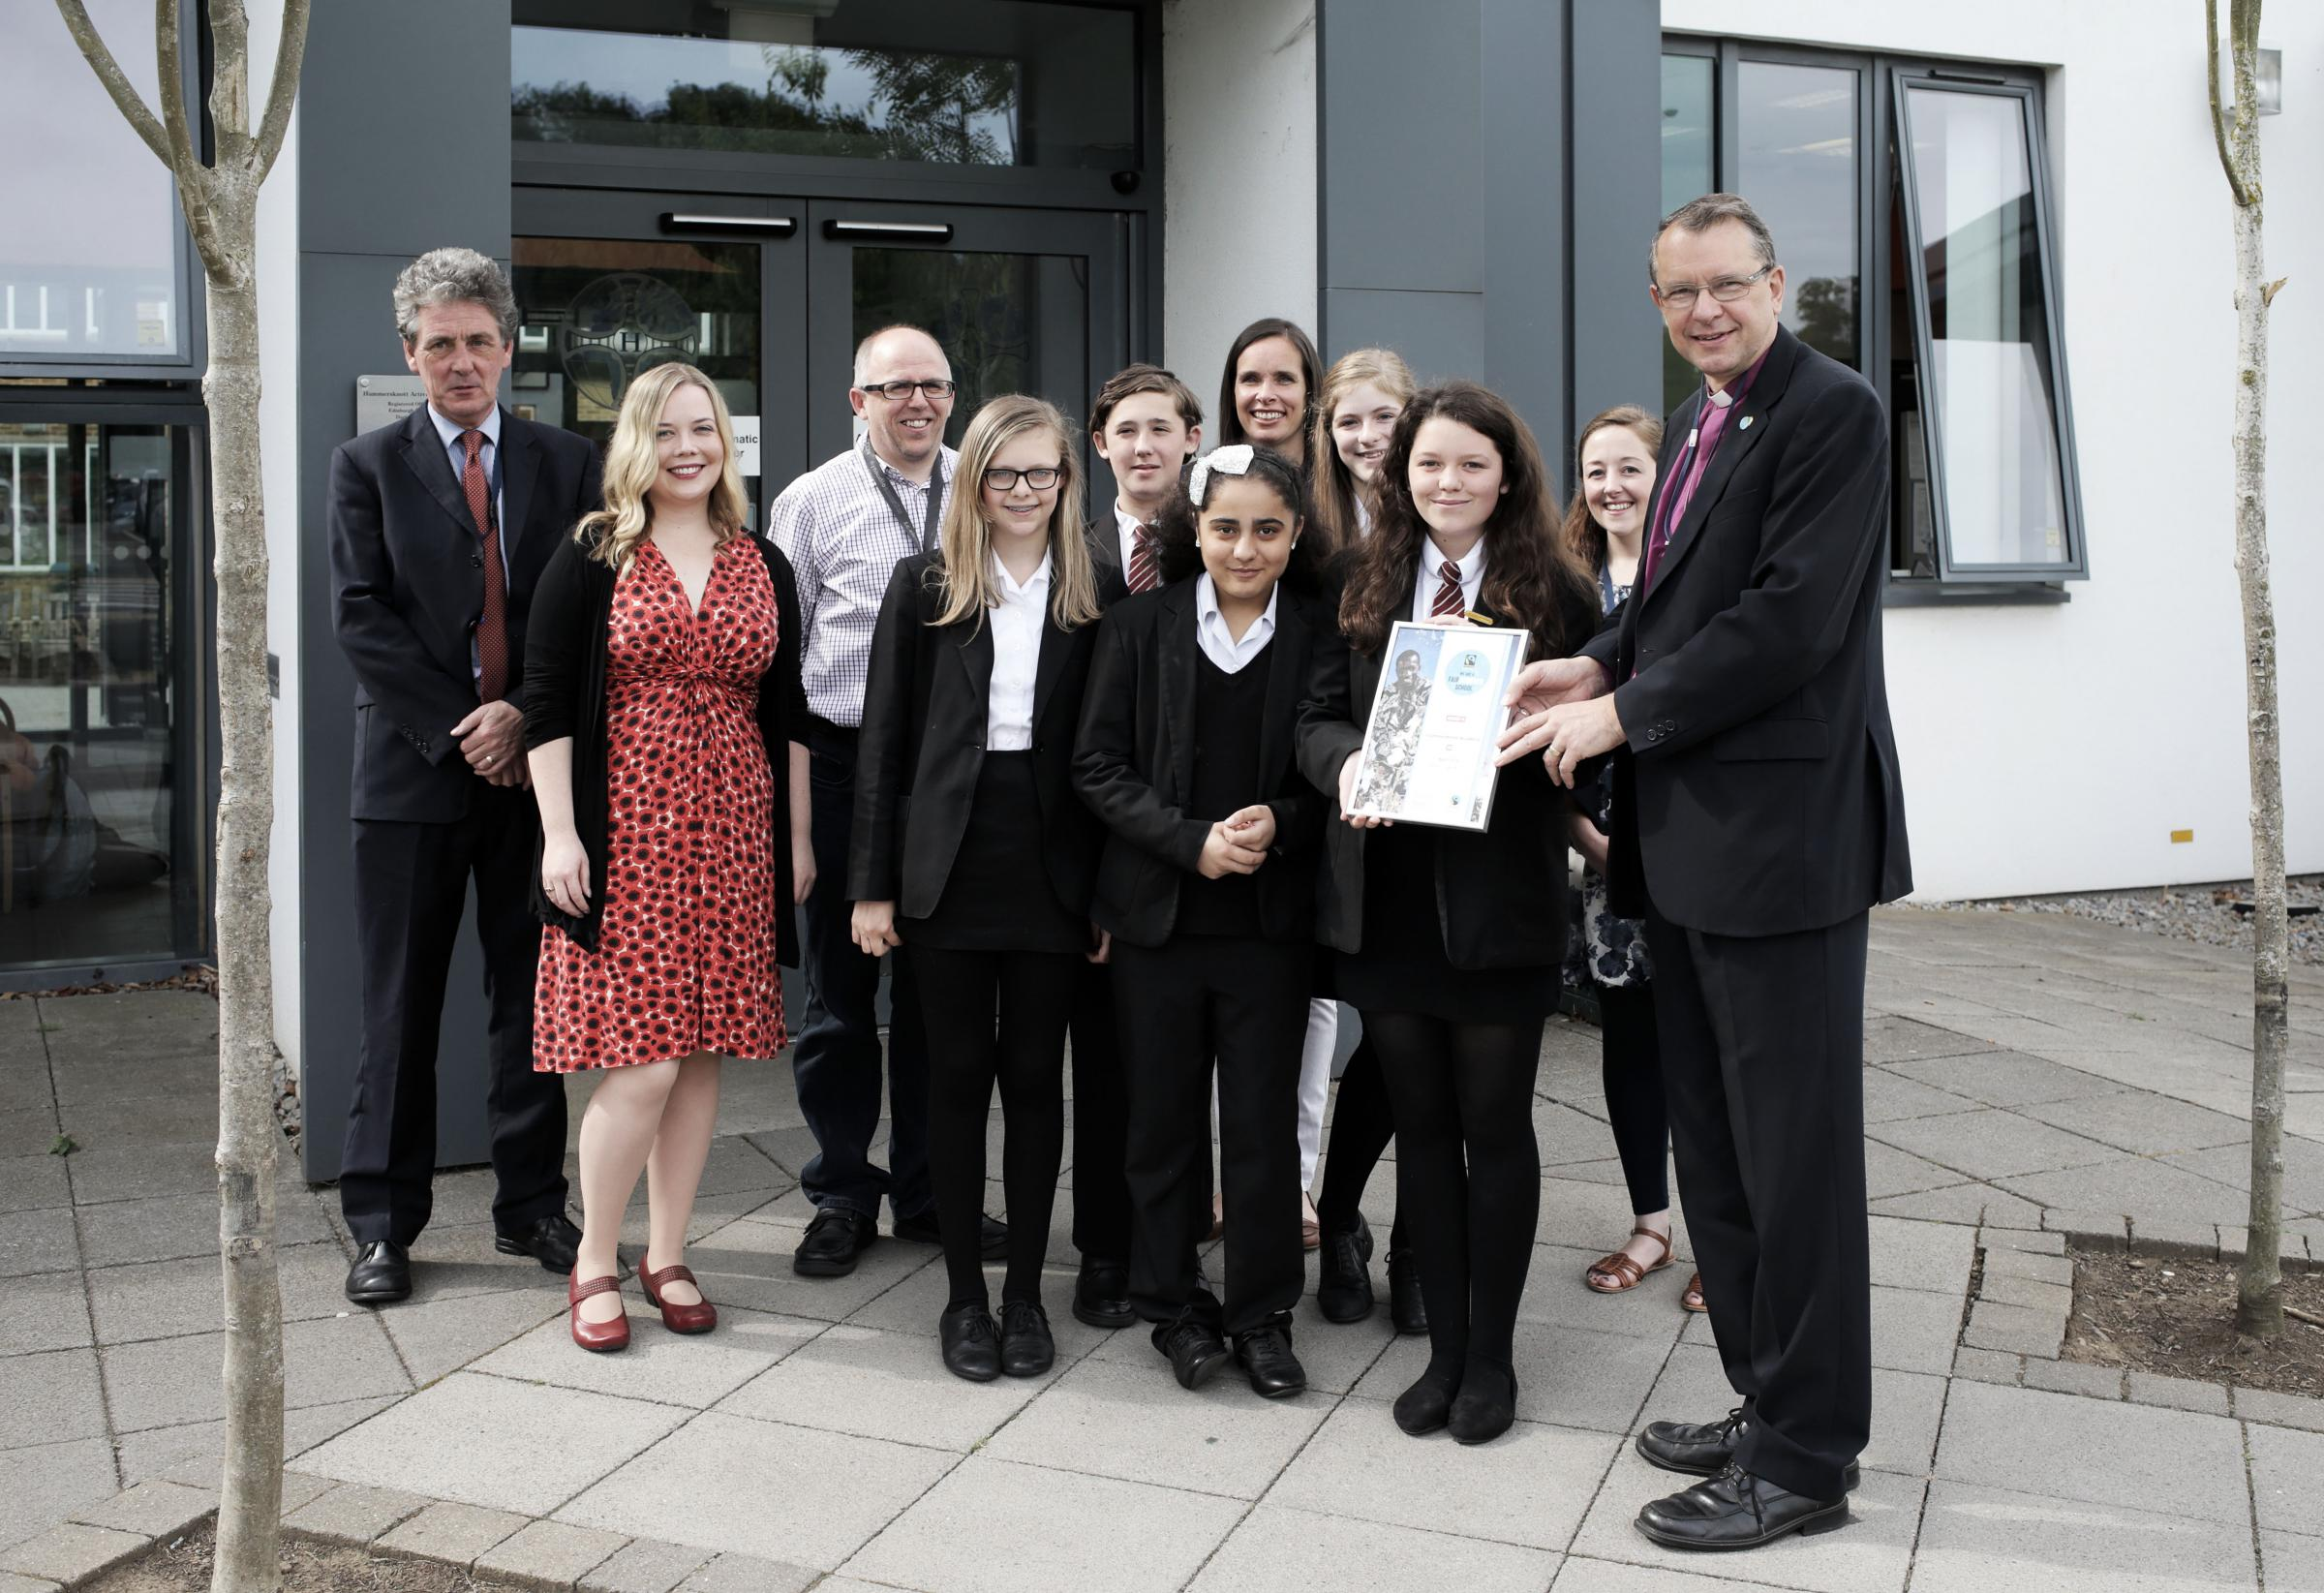 Darlington students' Fairtrade efforts rewarded